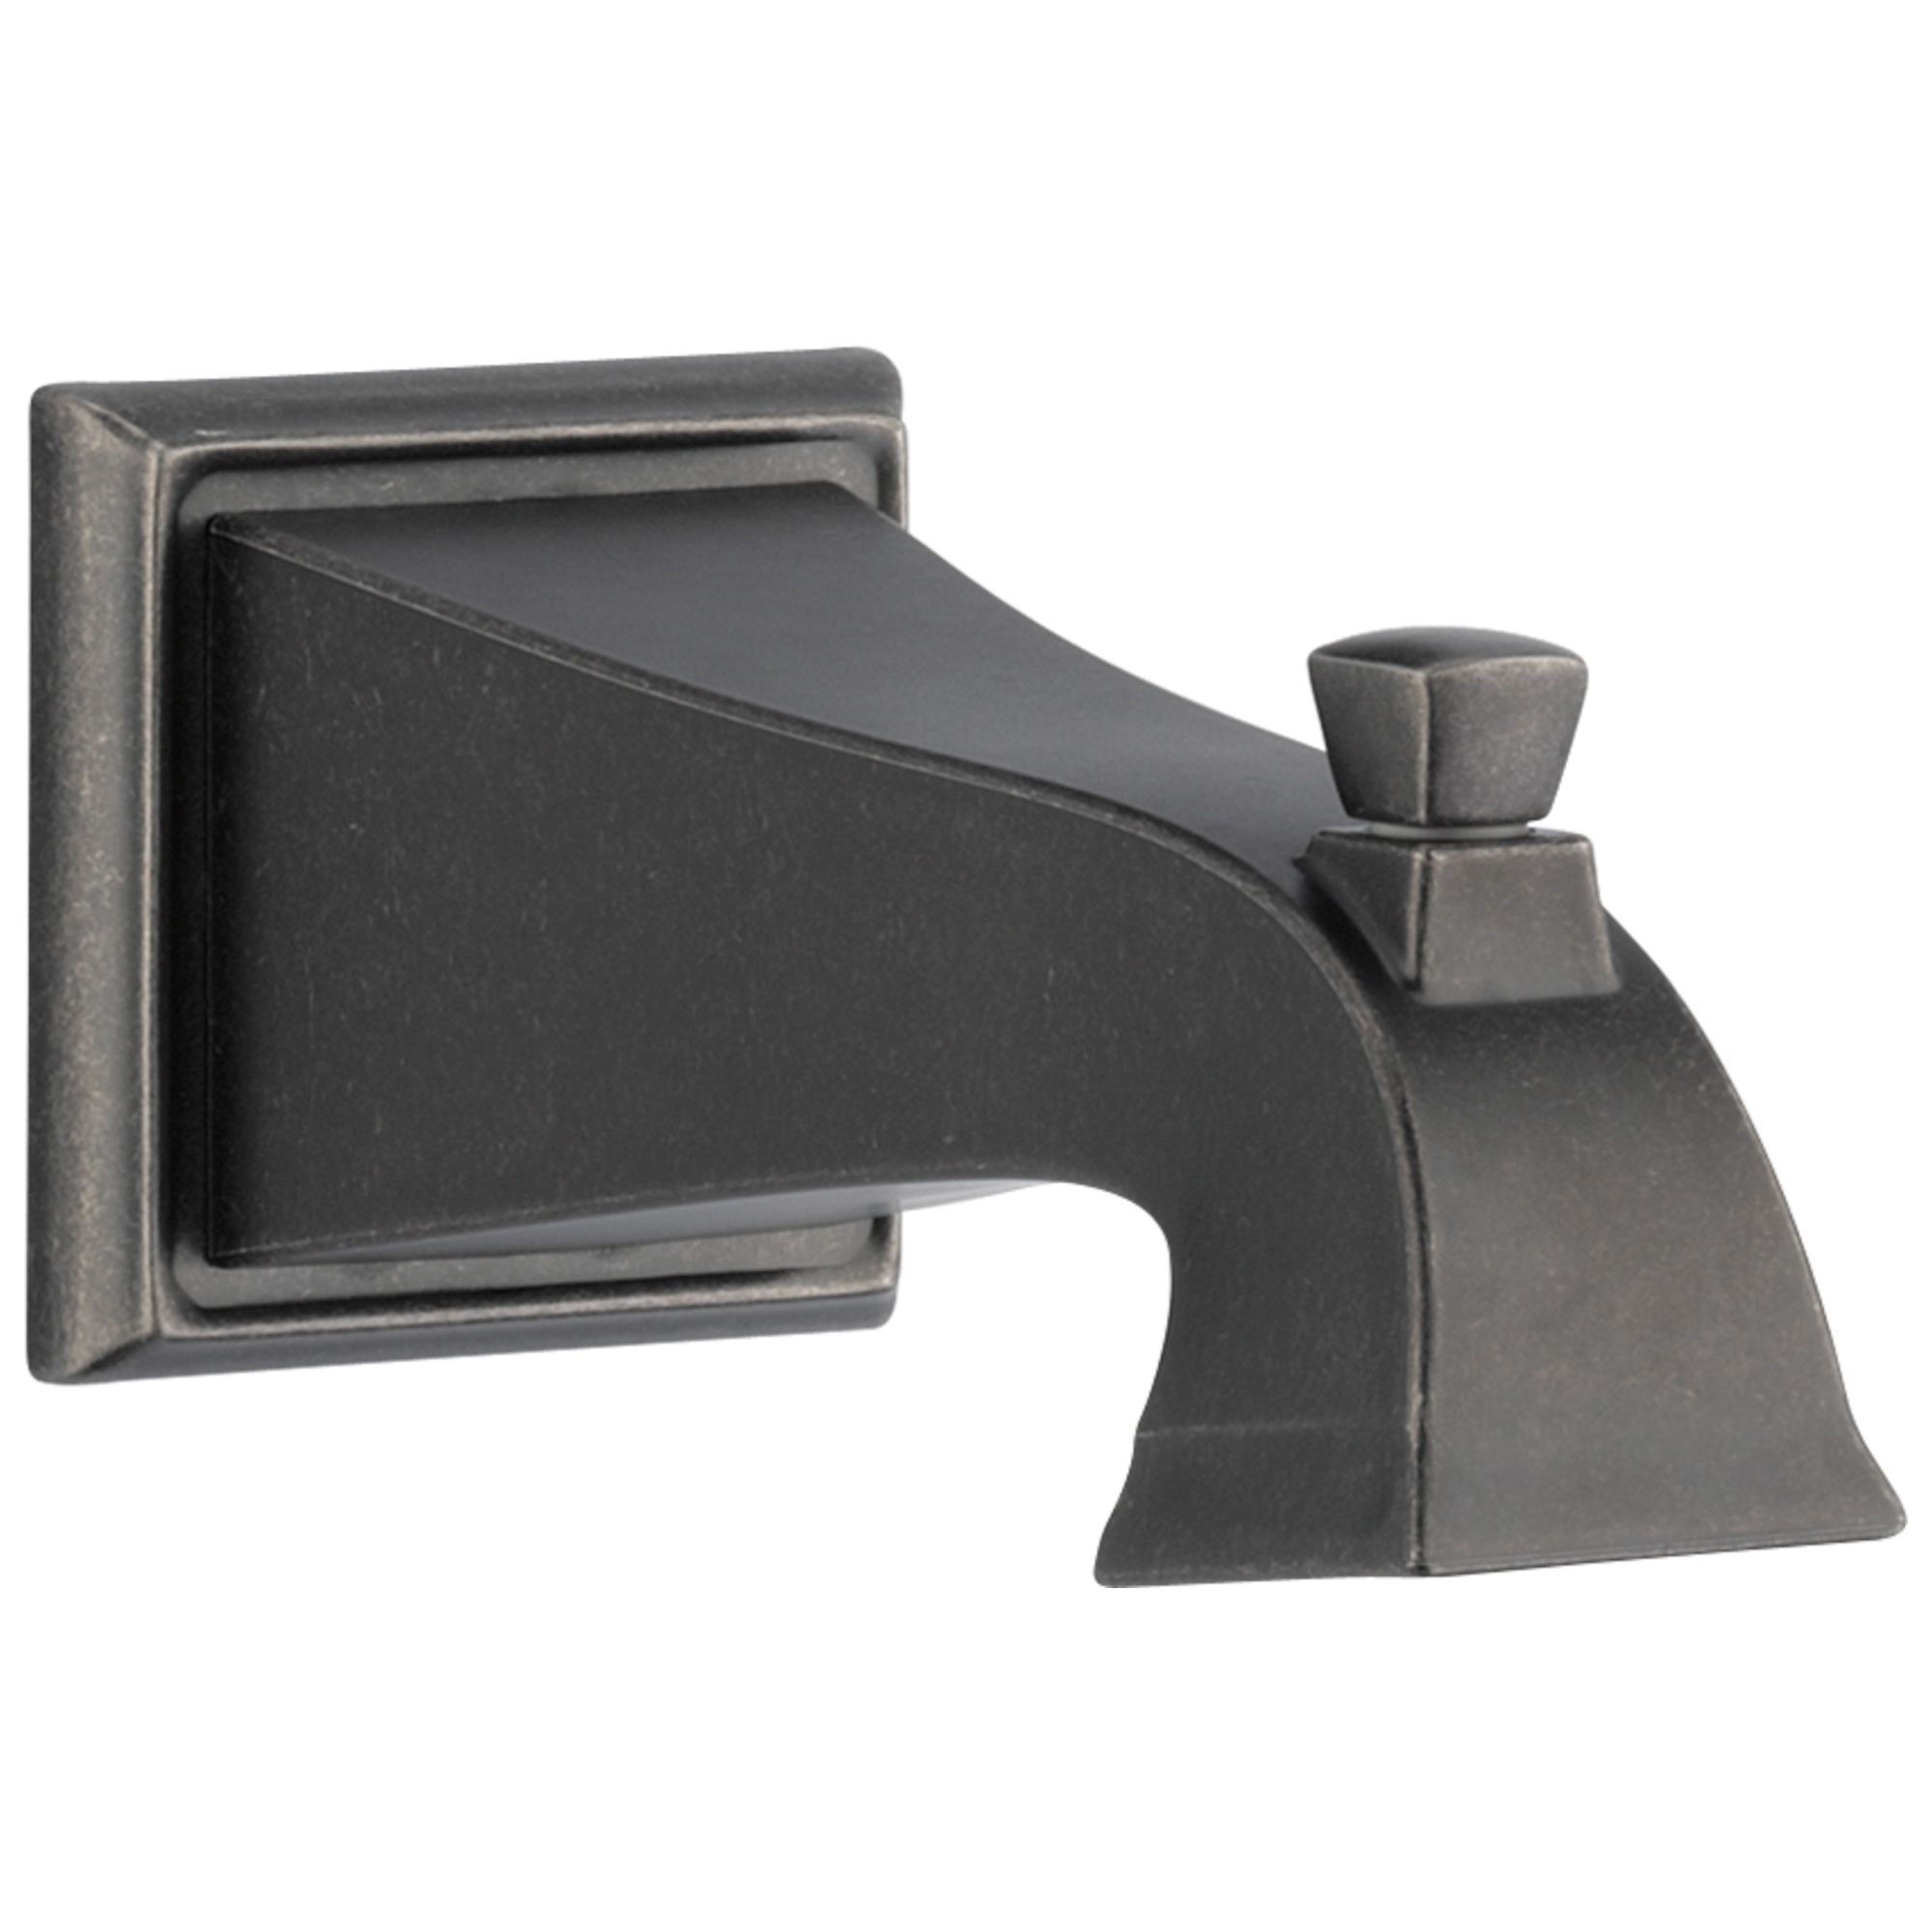 DELTA® RP52148PT Dryden™ Pull-Up Diverter Tub Spout, Aged Pewter